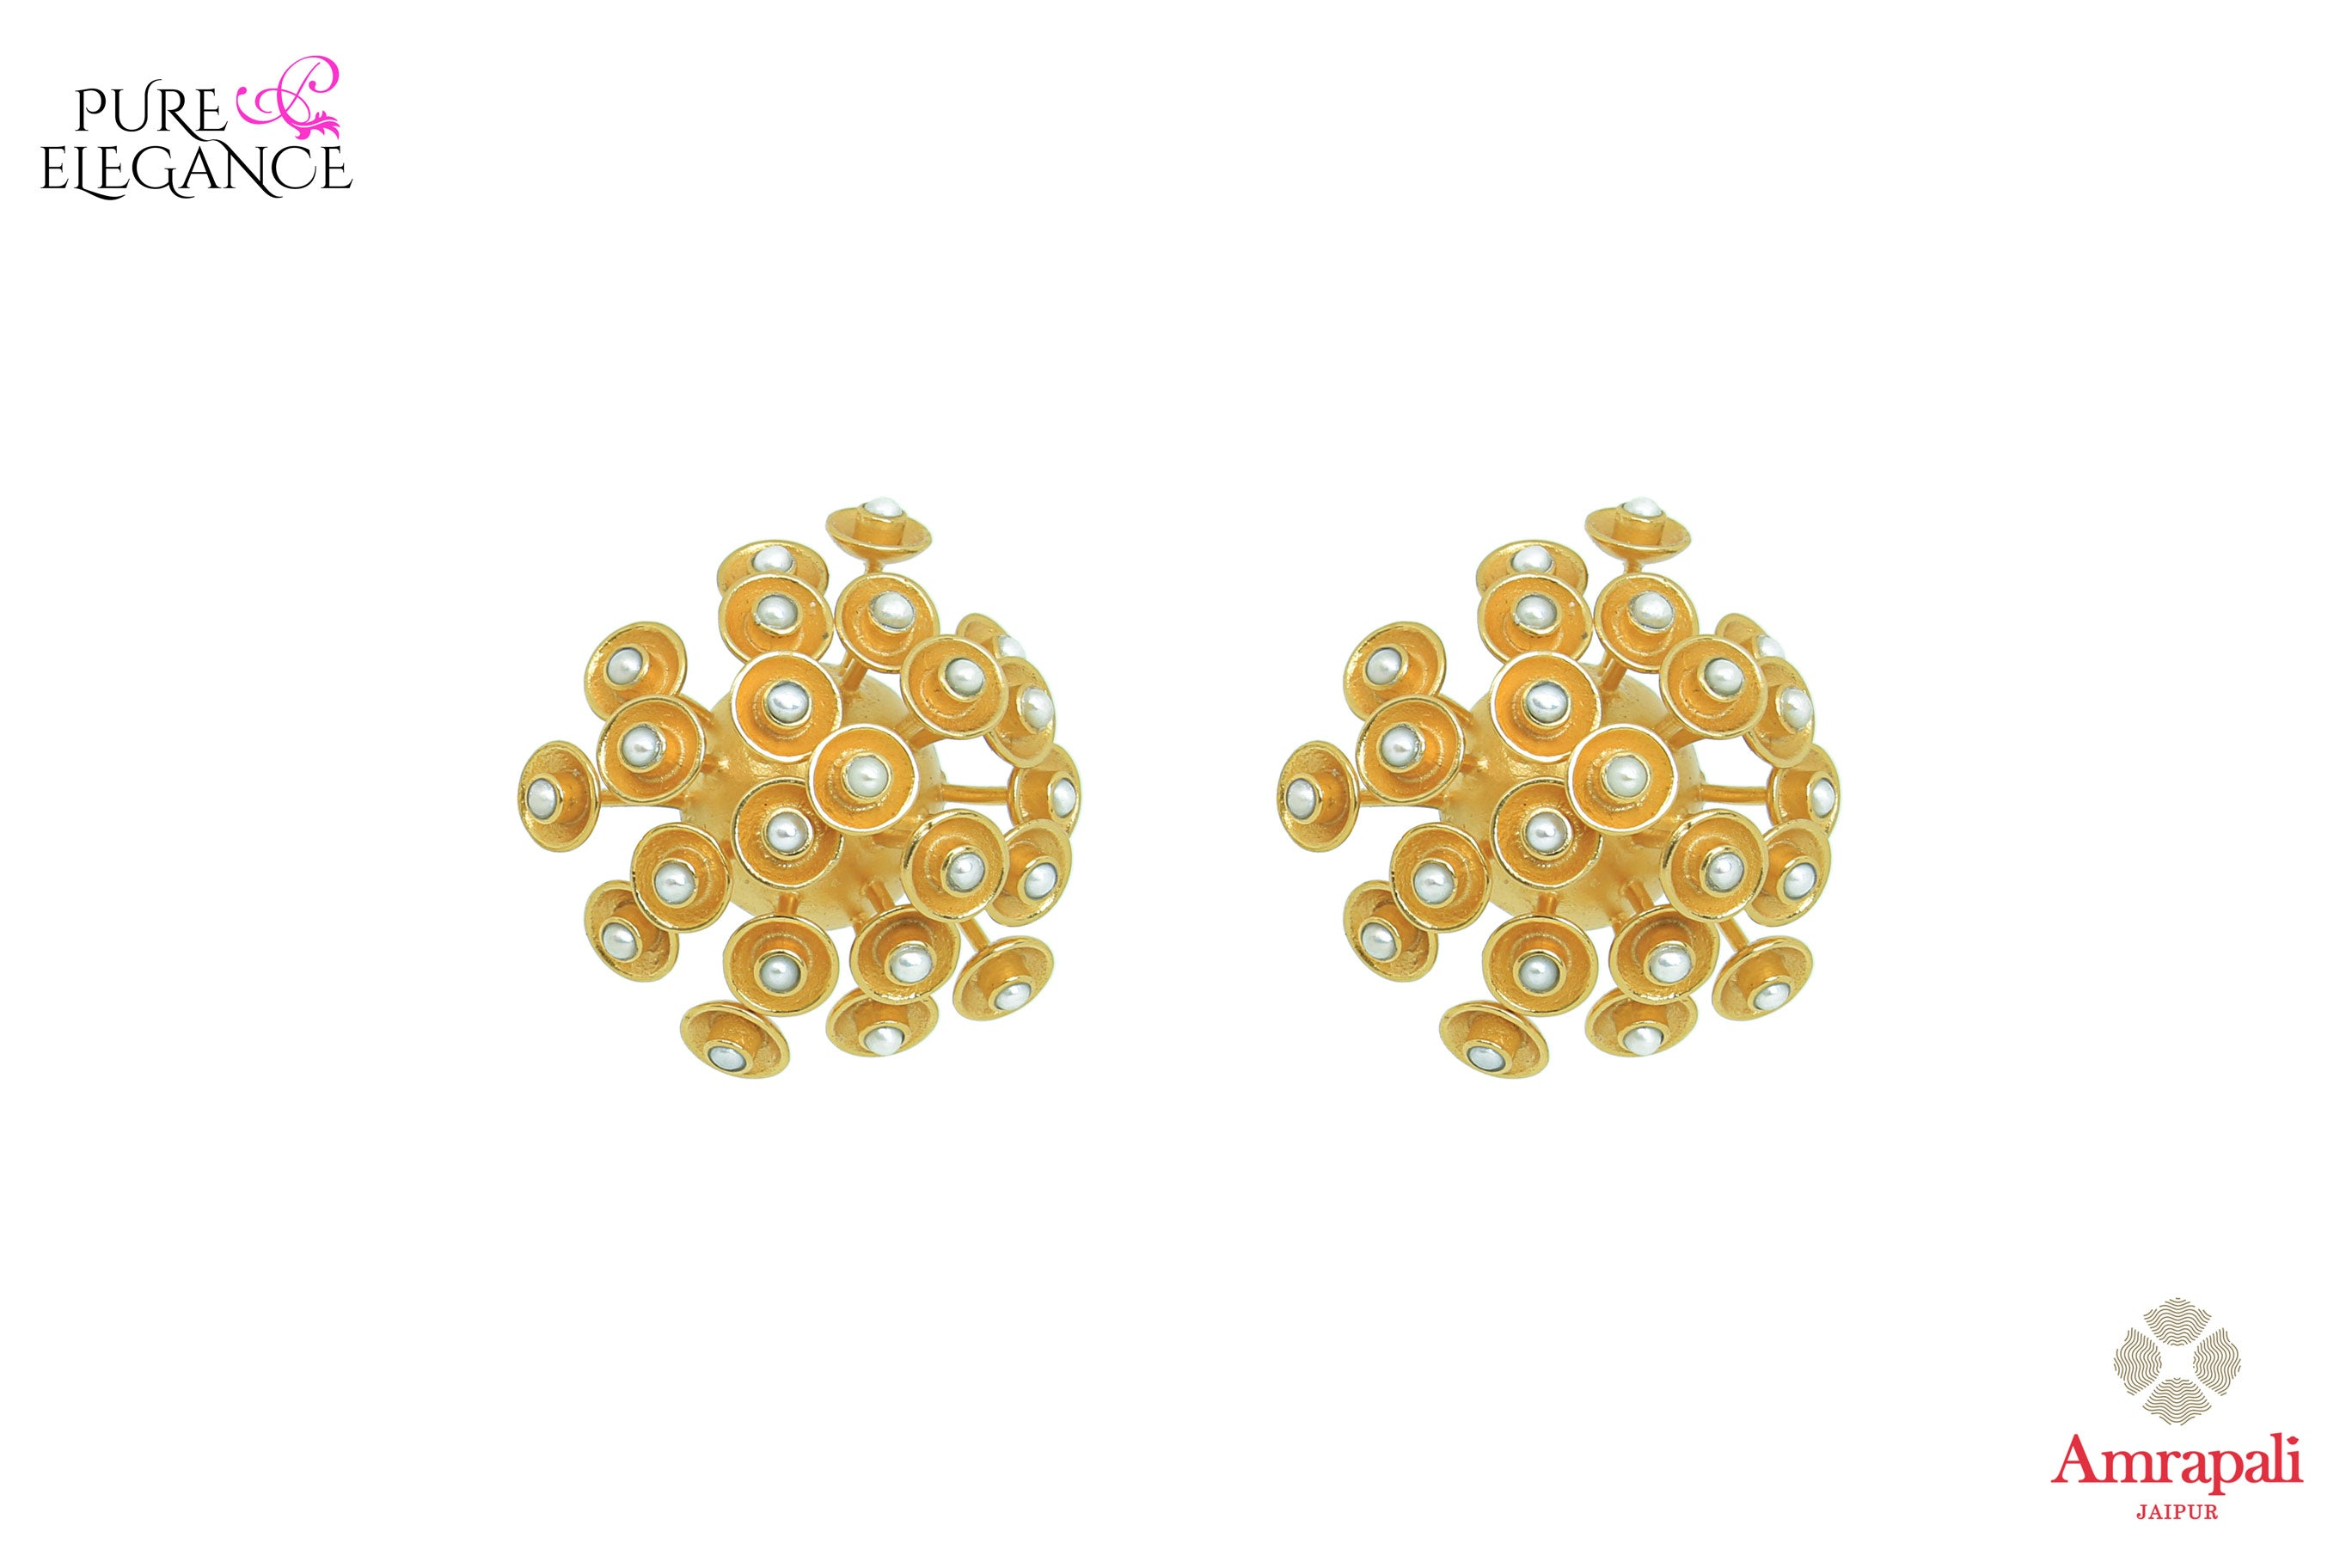 20B658 Silver Gold Plated Spiky Stud Earrings with Pearls